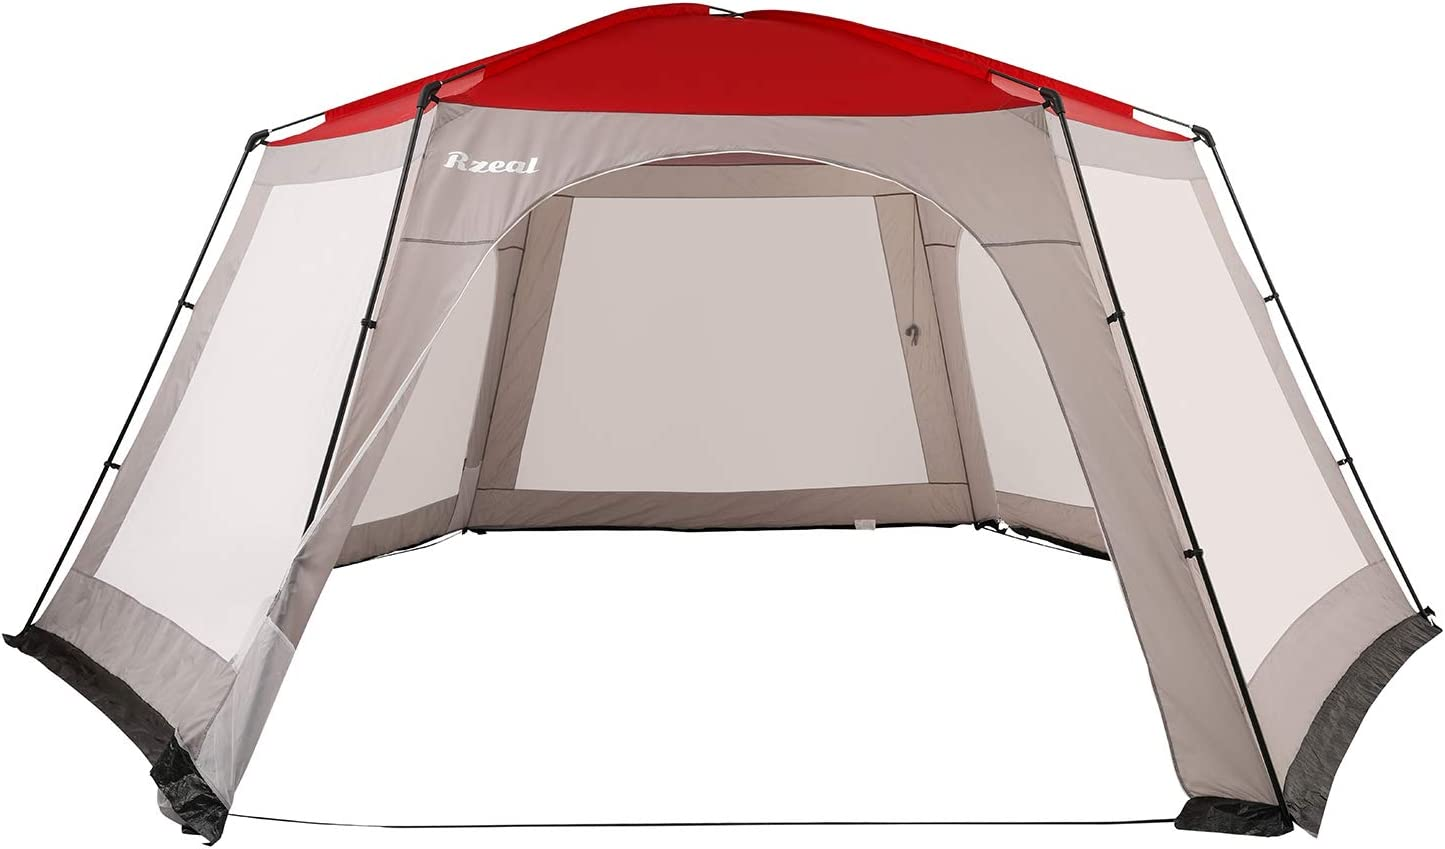 Reabeam Screen House Camping Tent, Canopy Gazebos 10-15 Person for Patios, Ultralight Sun Shelter Garden Tent, Dome Tent for Swimming Pool Large Oversize 19'×19'